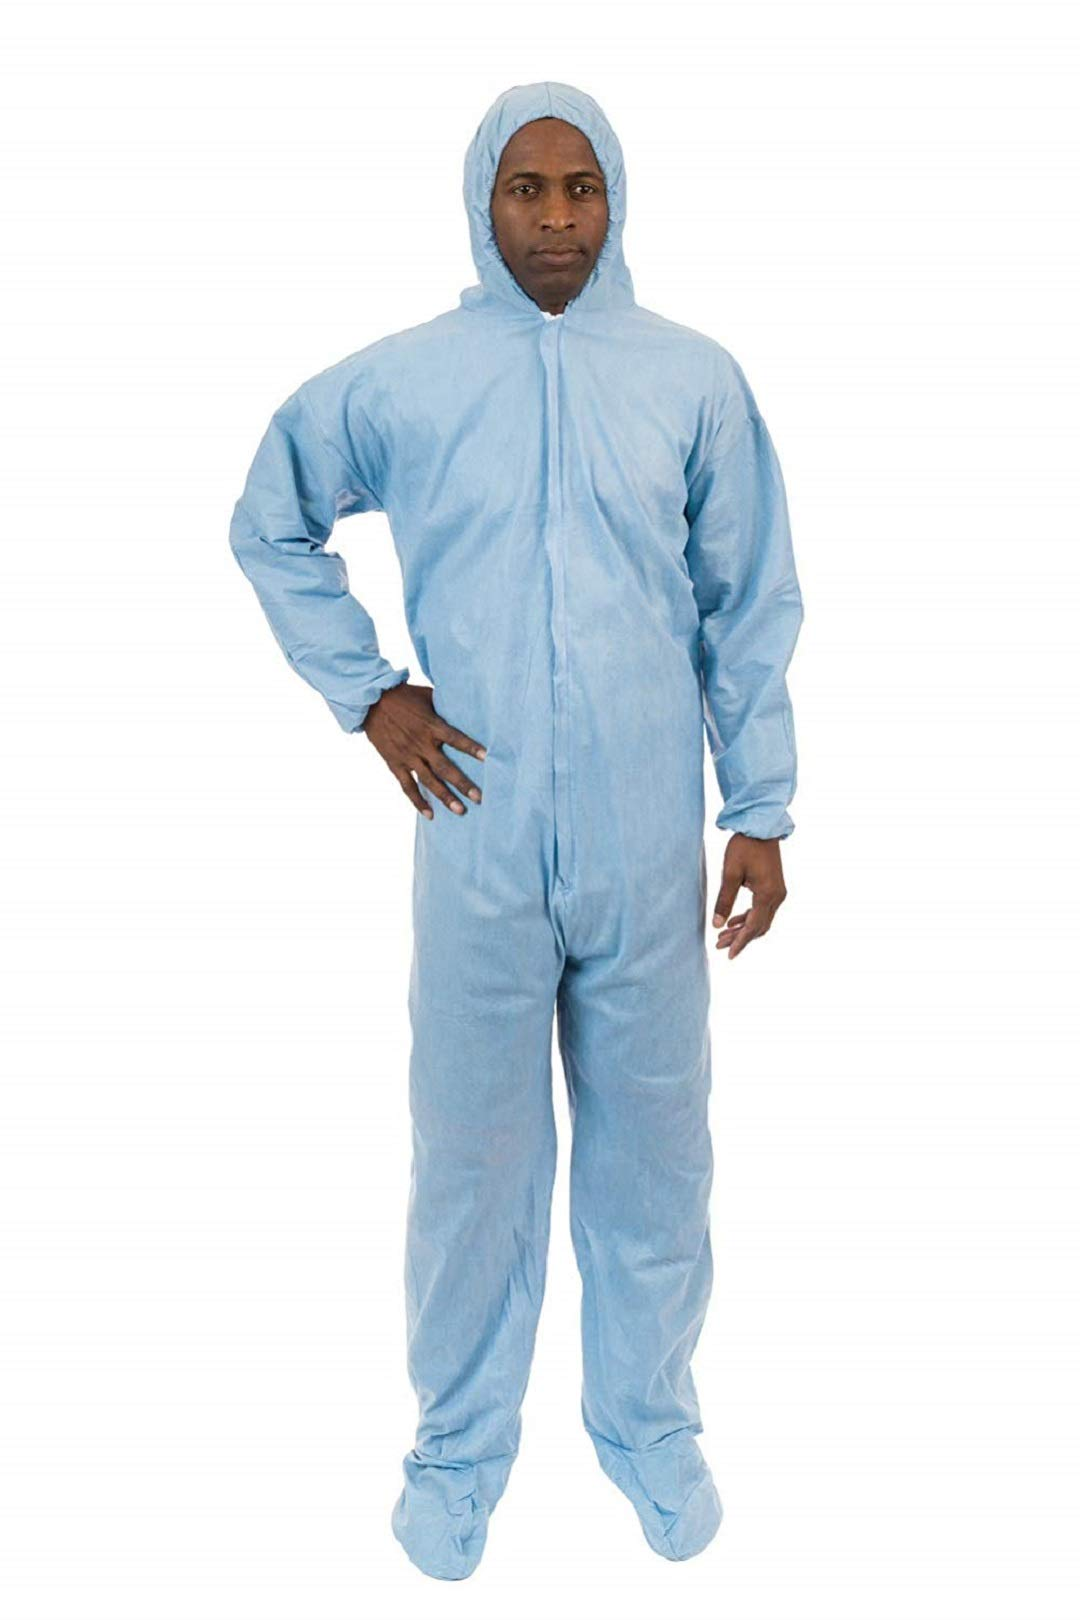 PyroGuard FR Disposable Flame Resistant Outerlayer Coveralls (Blue) (Case of 25) (5XL, Elastic Wrist, Hood & Boots)